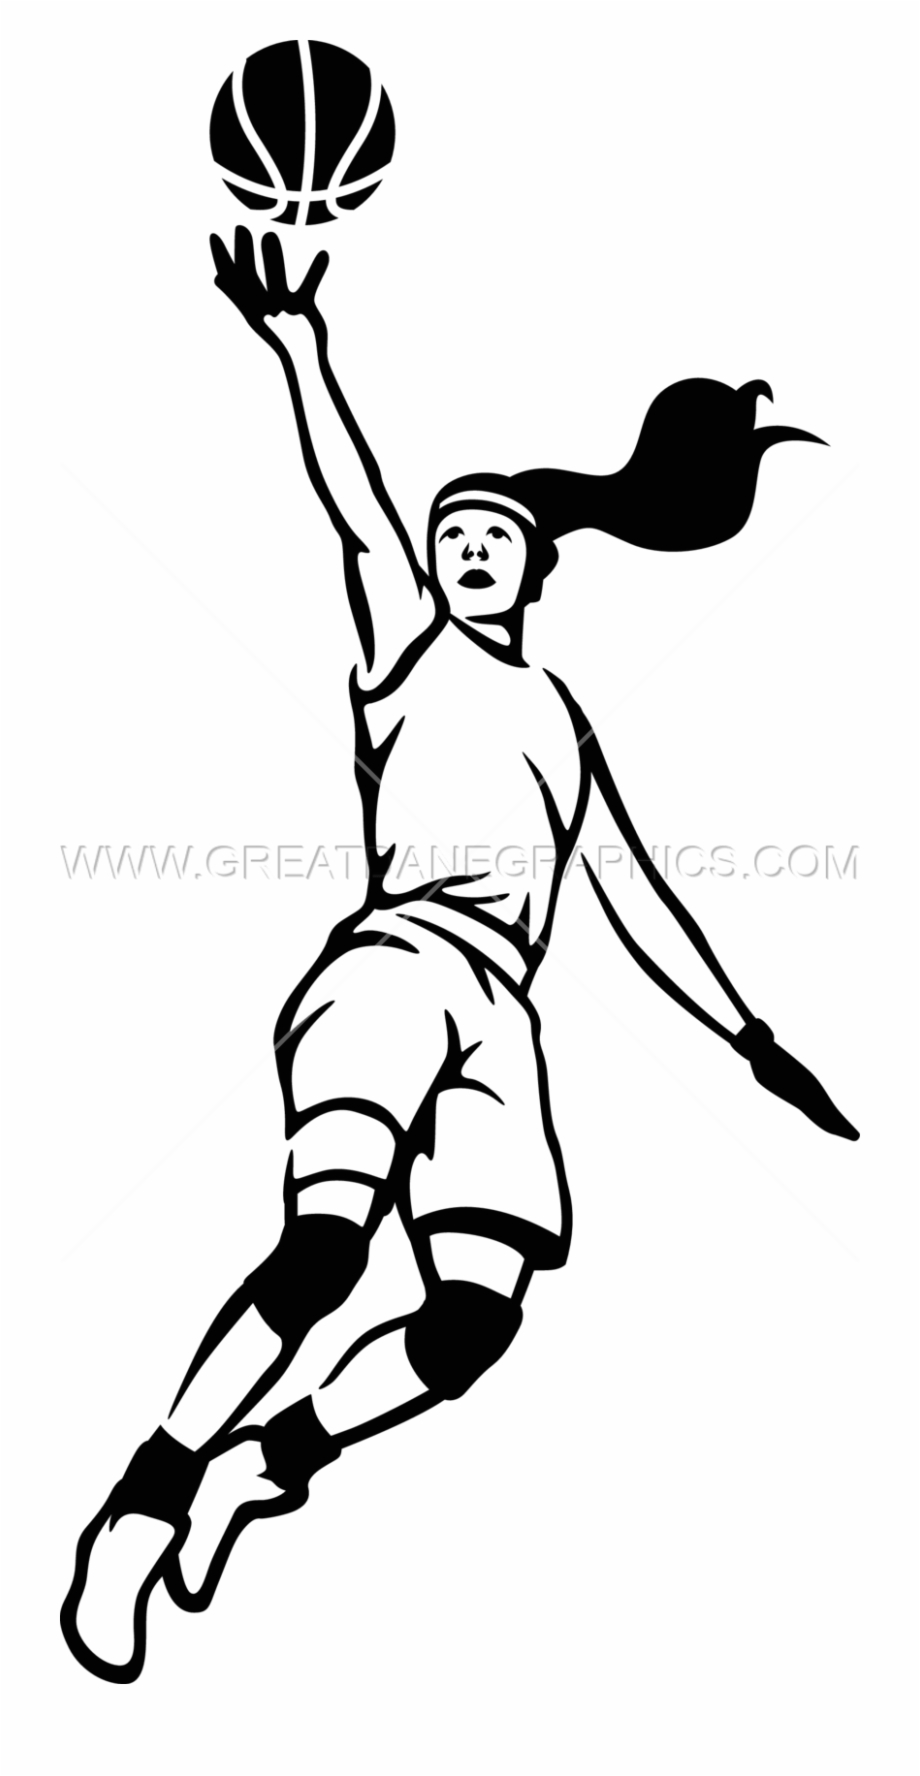 Girl player basketball clipart black and white vector library Clip Art Freeuse Stock Girls Download Best X Craft - Girls ... vector library